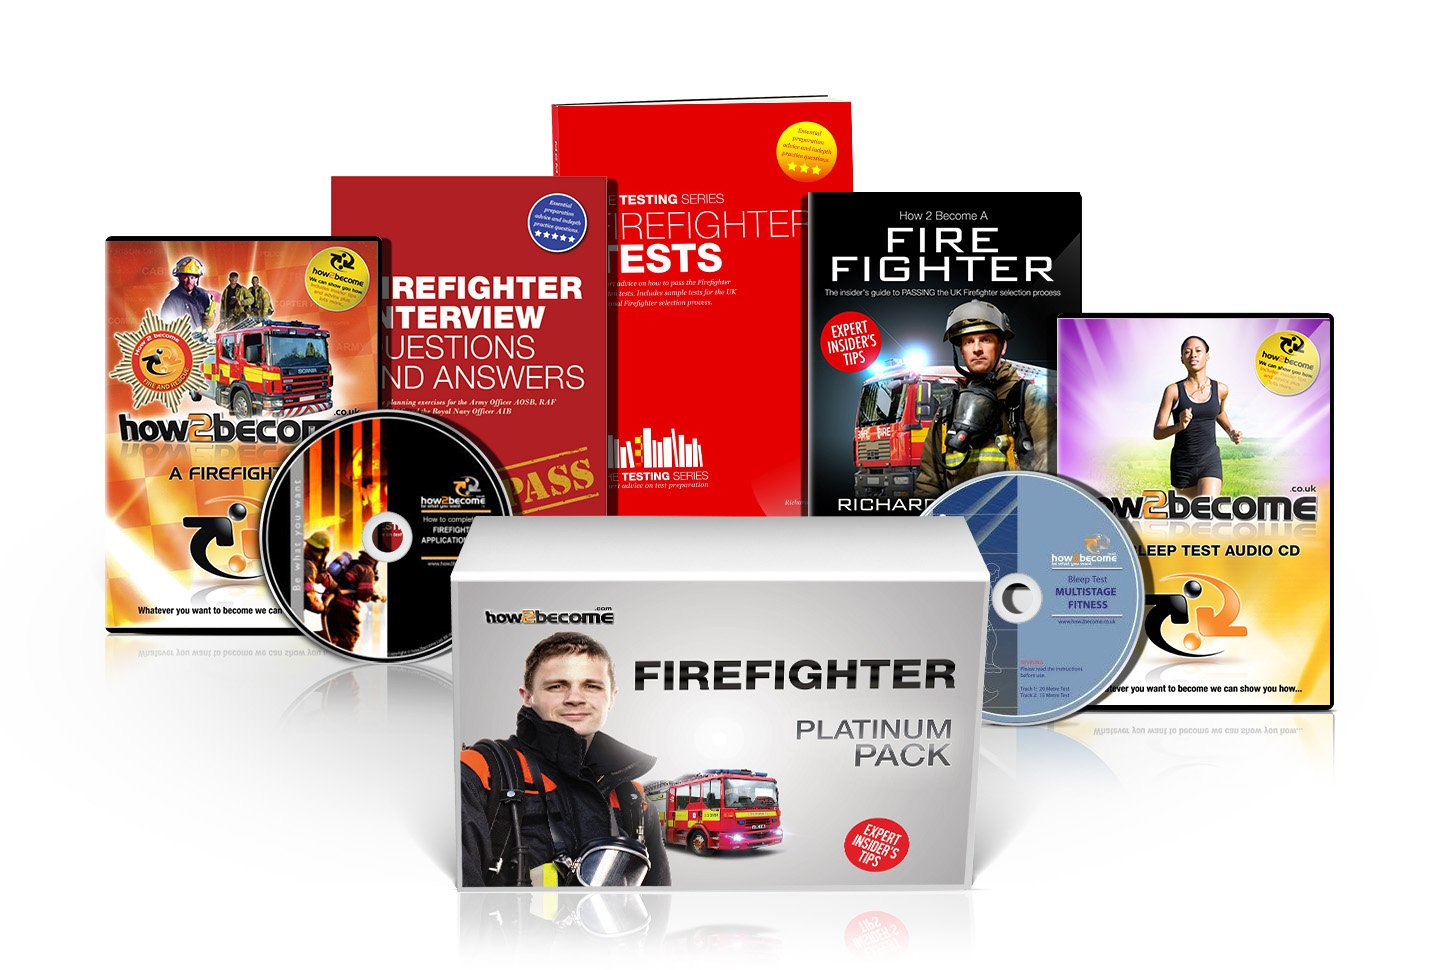 firefighter recruitment platinum package box set how to become a firefighter recruitment platinum package box set how to become a firefighter book firefighter interview questions and answers firefighter tests